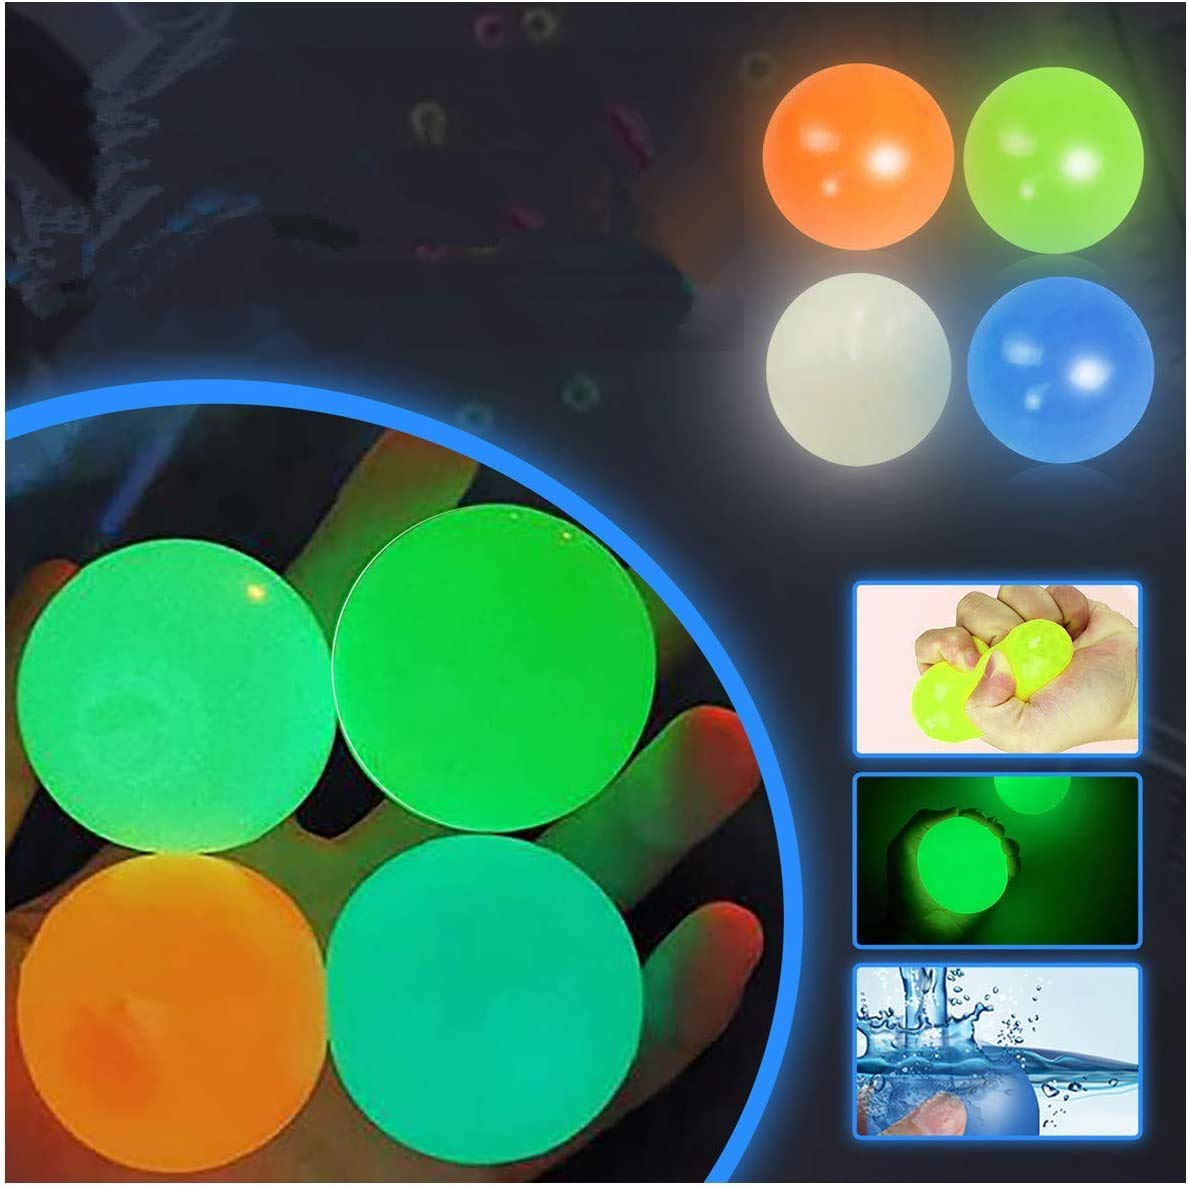 FURUDONGHAI Globbles Sticky Balls That gets Stuck on The roof,Stress Balls, Squishy Glow Stress Relief Toys, Stick to The Wall and Slowly Fall Off, Fun Toy for ADHD, OCD, Anxiety (1.77 inch, 4 pcs)